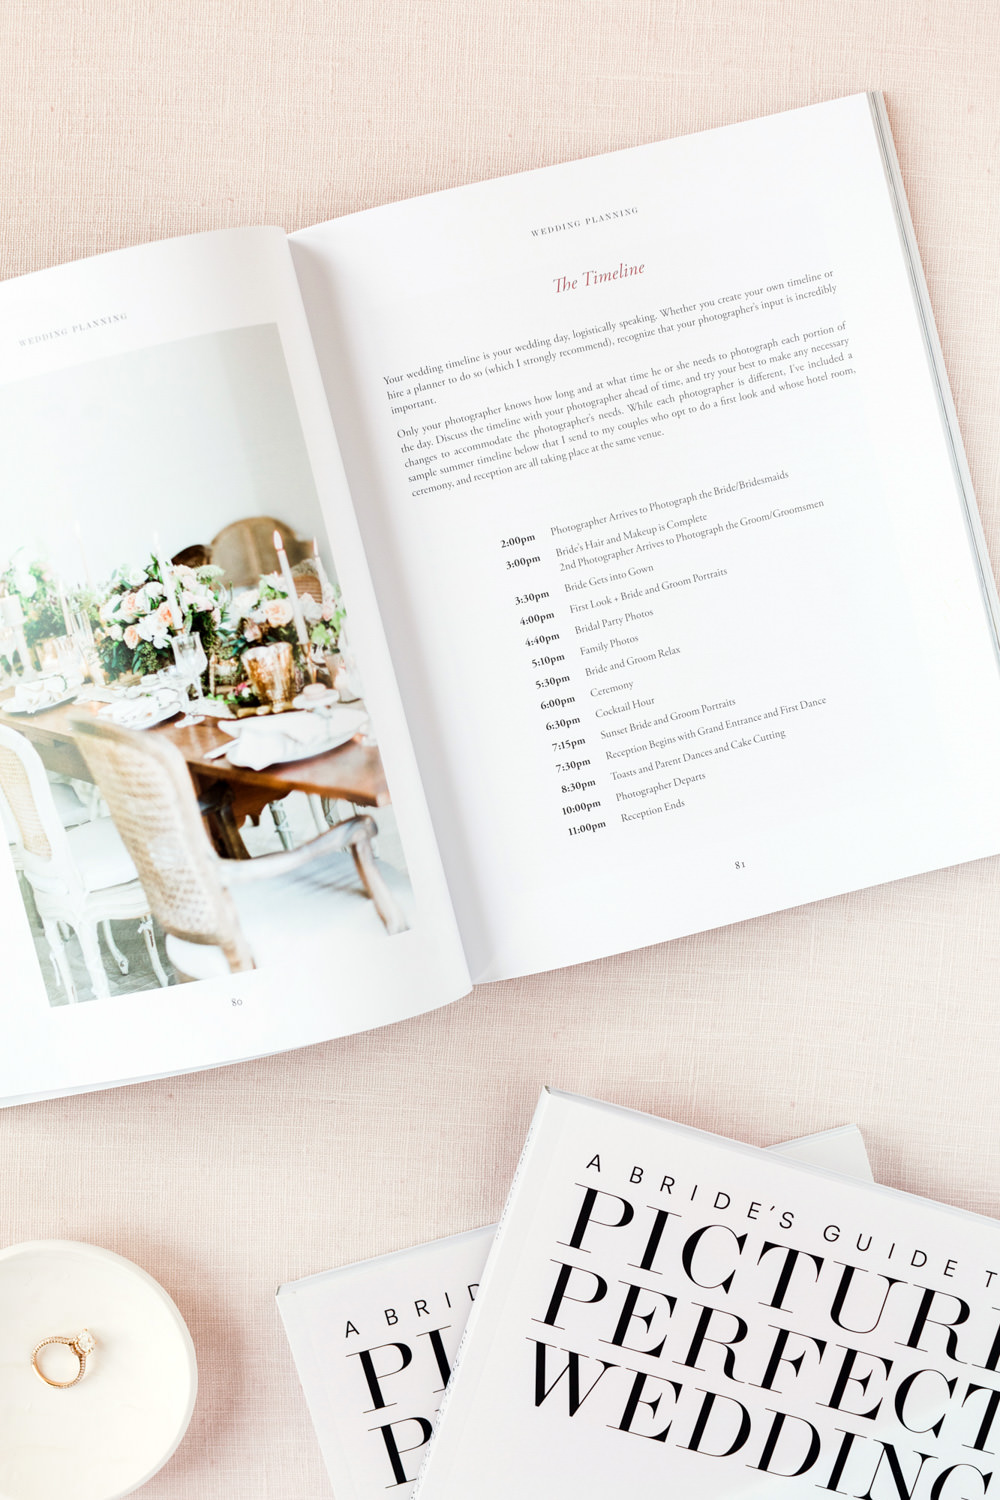 A Bride's Guide to a Picture Perfect Wedding, wedding planning book and guide with tips for brides about how to have better wedding photography